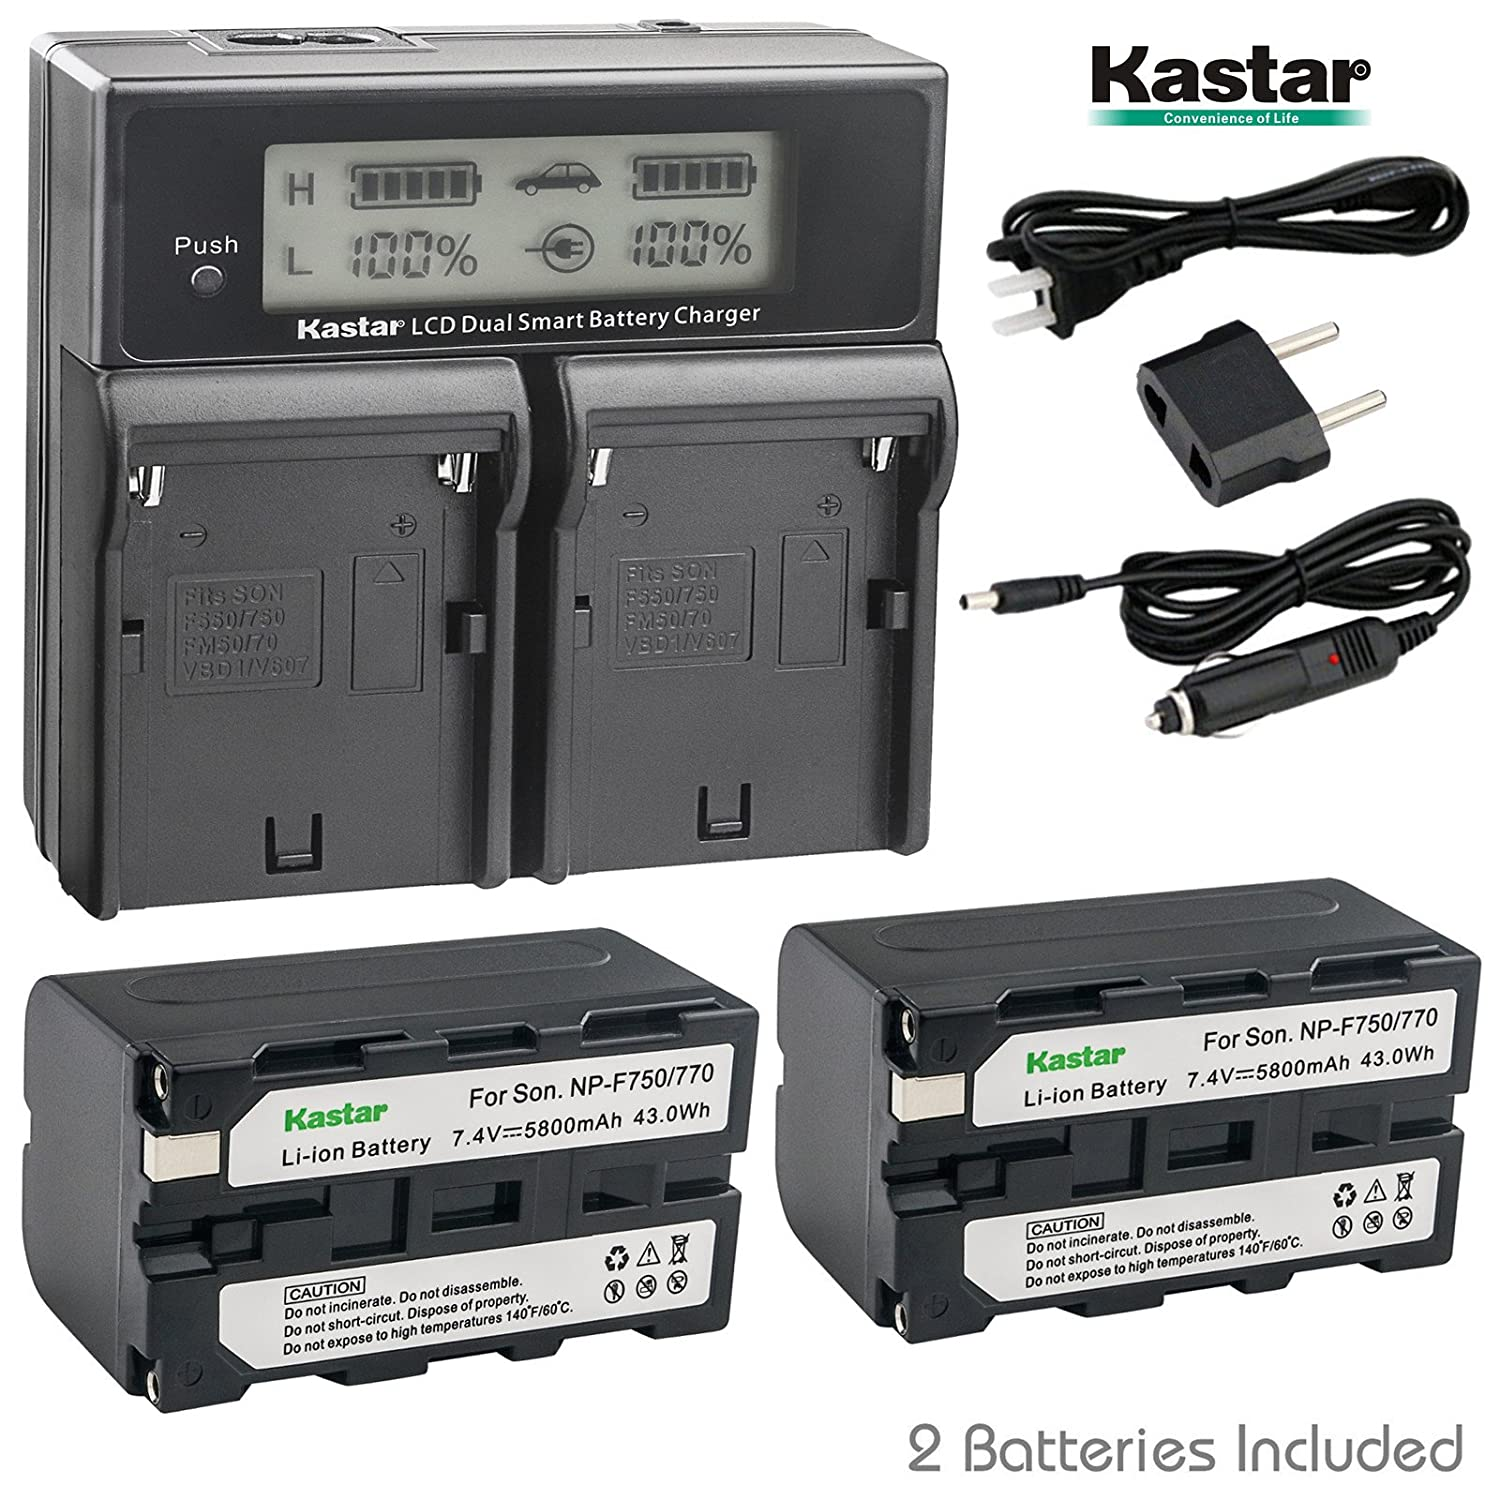 Kastar LCD Dual Smart Fast Charger /& 2 x Battery for Sony NP-F770 NP-F750 and CCD-RV100 CCD-RV200 CCD-SC9 CCD-TR1 CCD-TR940 CCD-TR917 Camera CN-126 CN-160 CN-216 CN-304 YN 300 VL600 LED Video Light